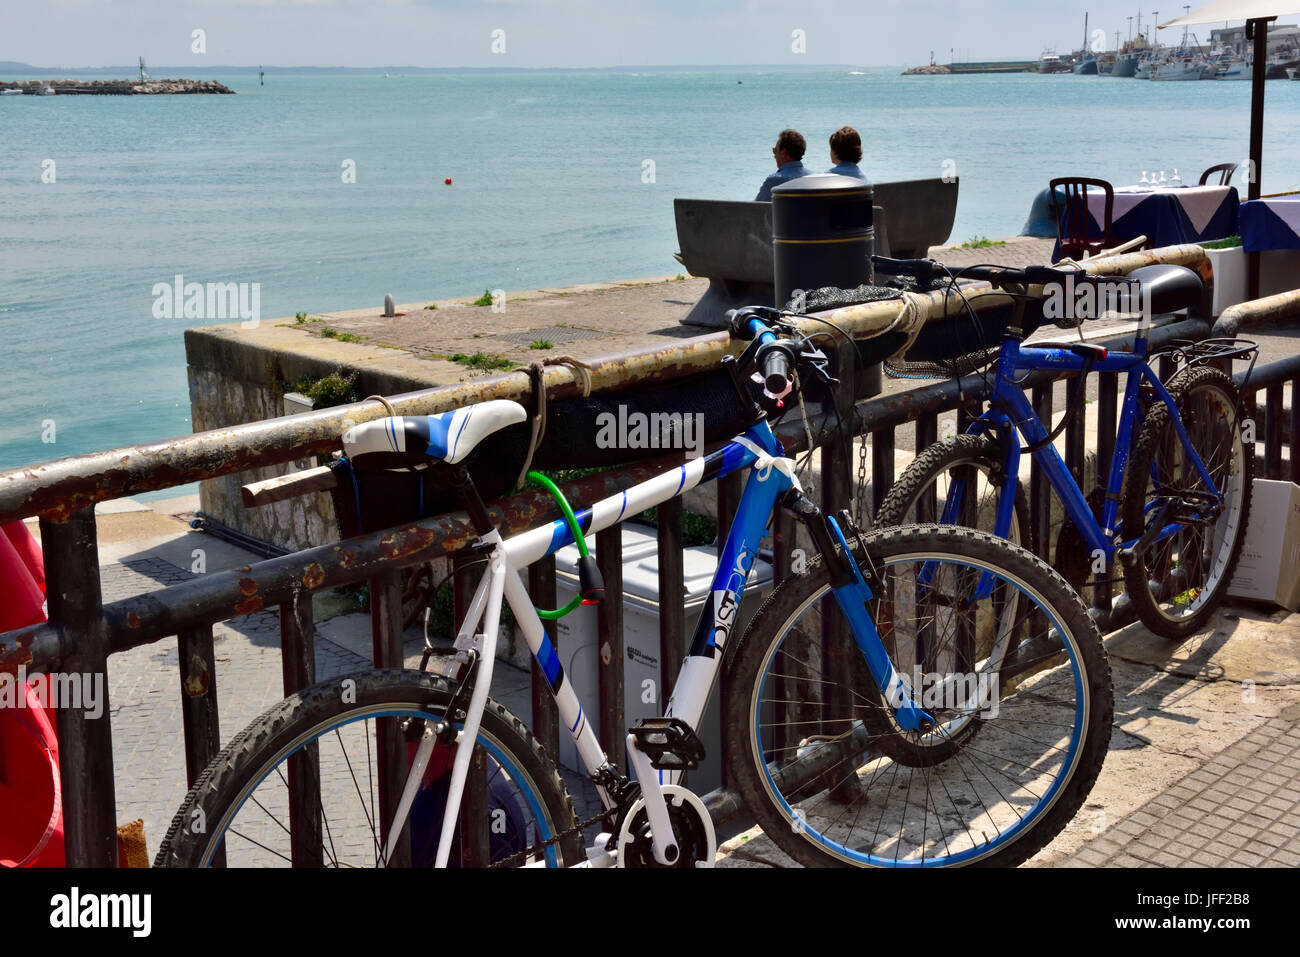 Two bicycles parked against railings, in background two people on bench looking out to sea - Stock Image